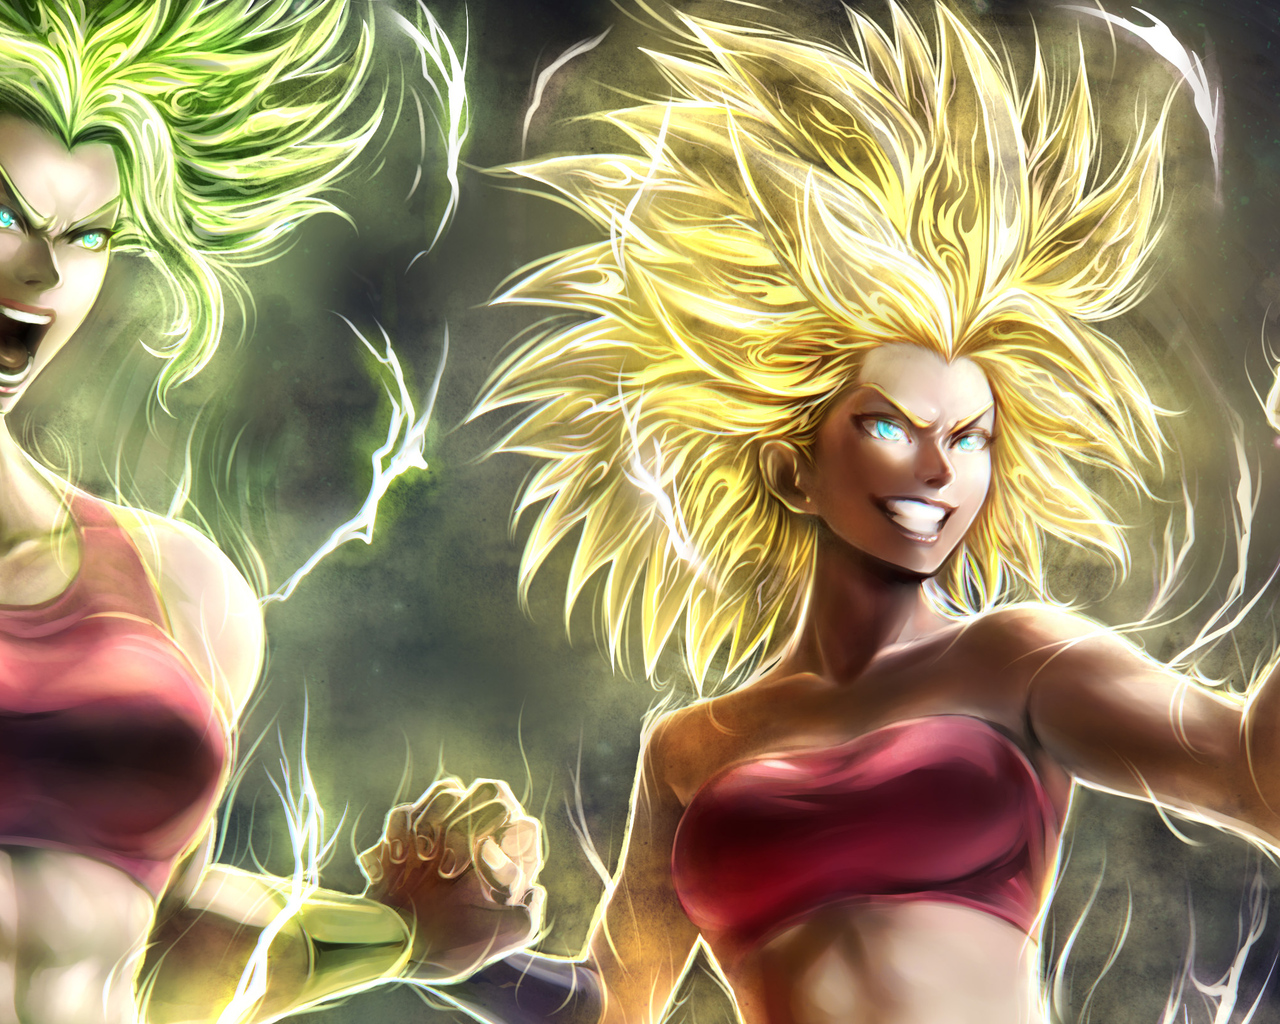 caulifla-kale-dragon-ball-super-girls-jj.jpg